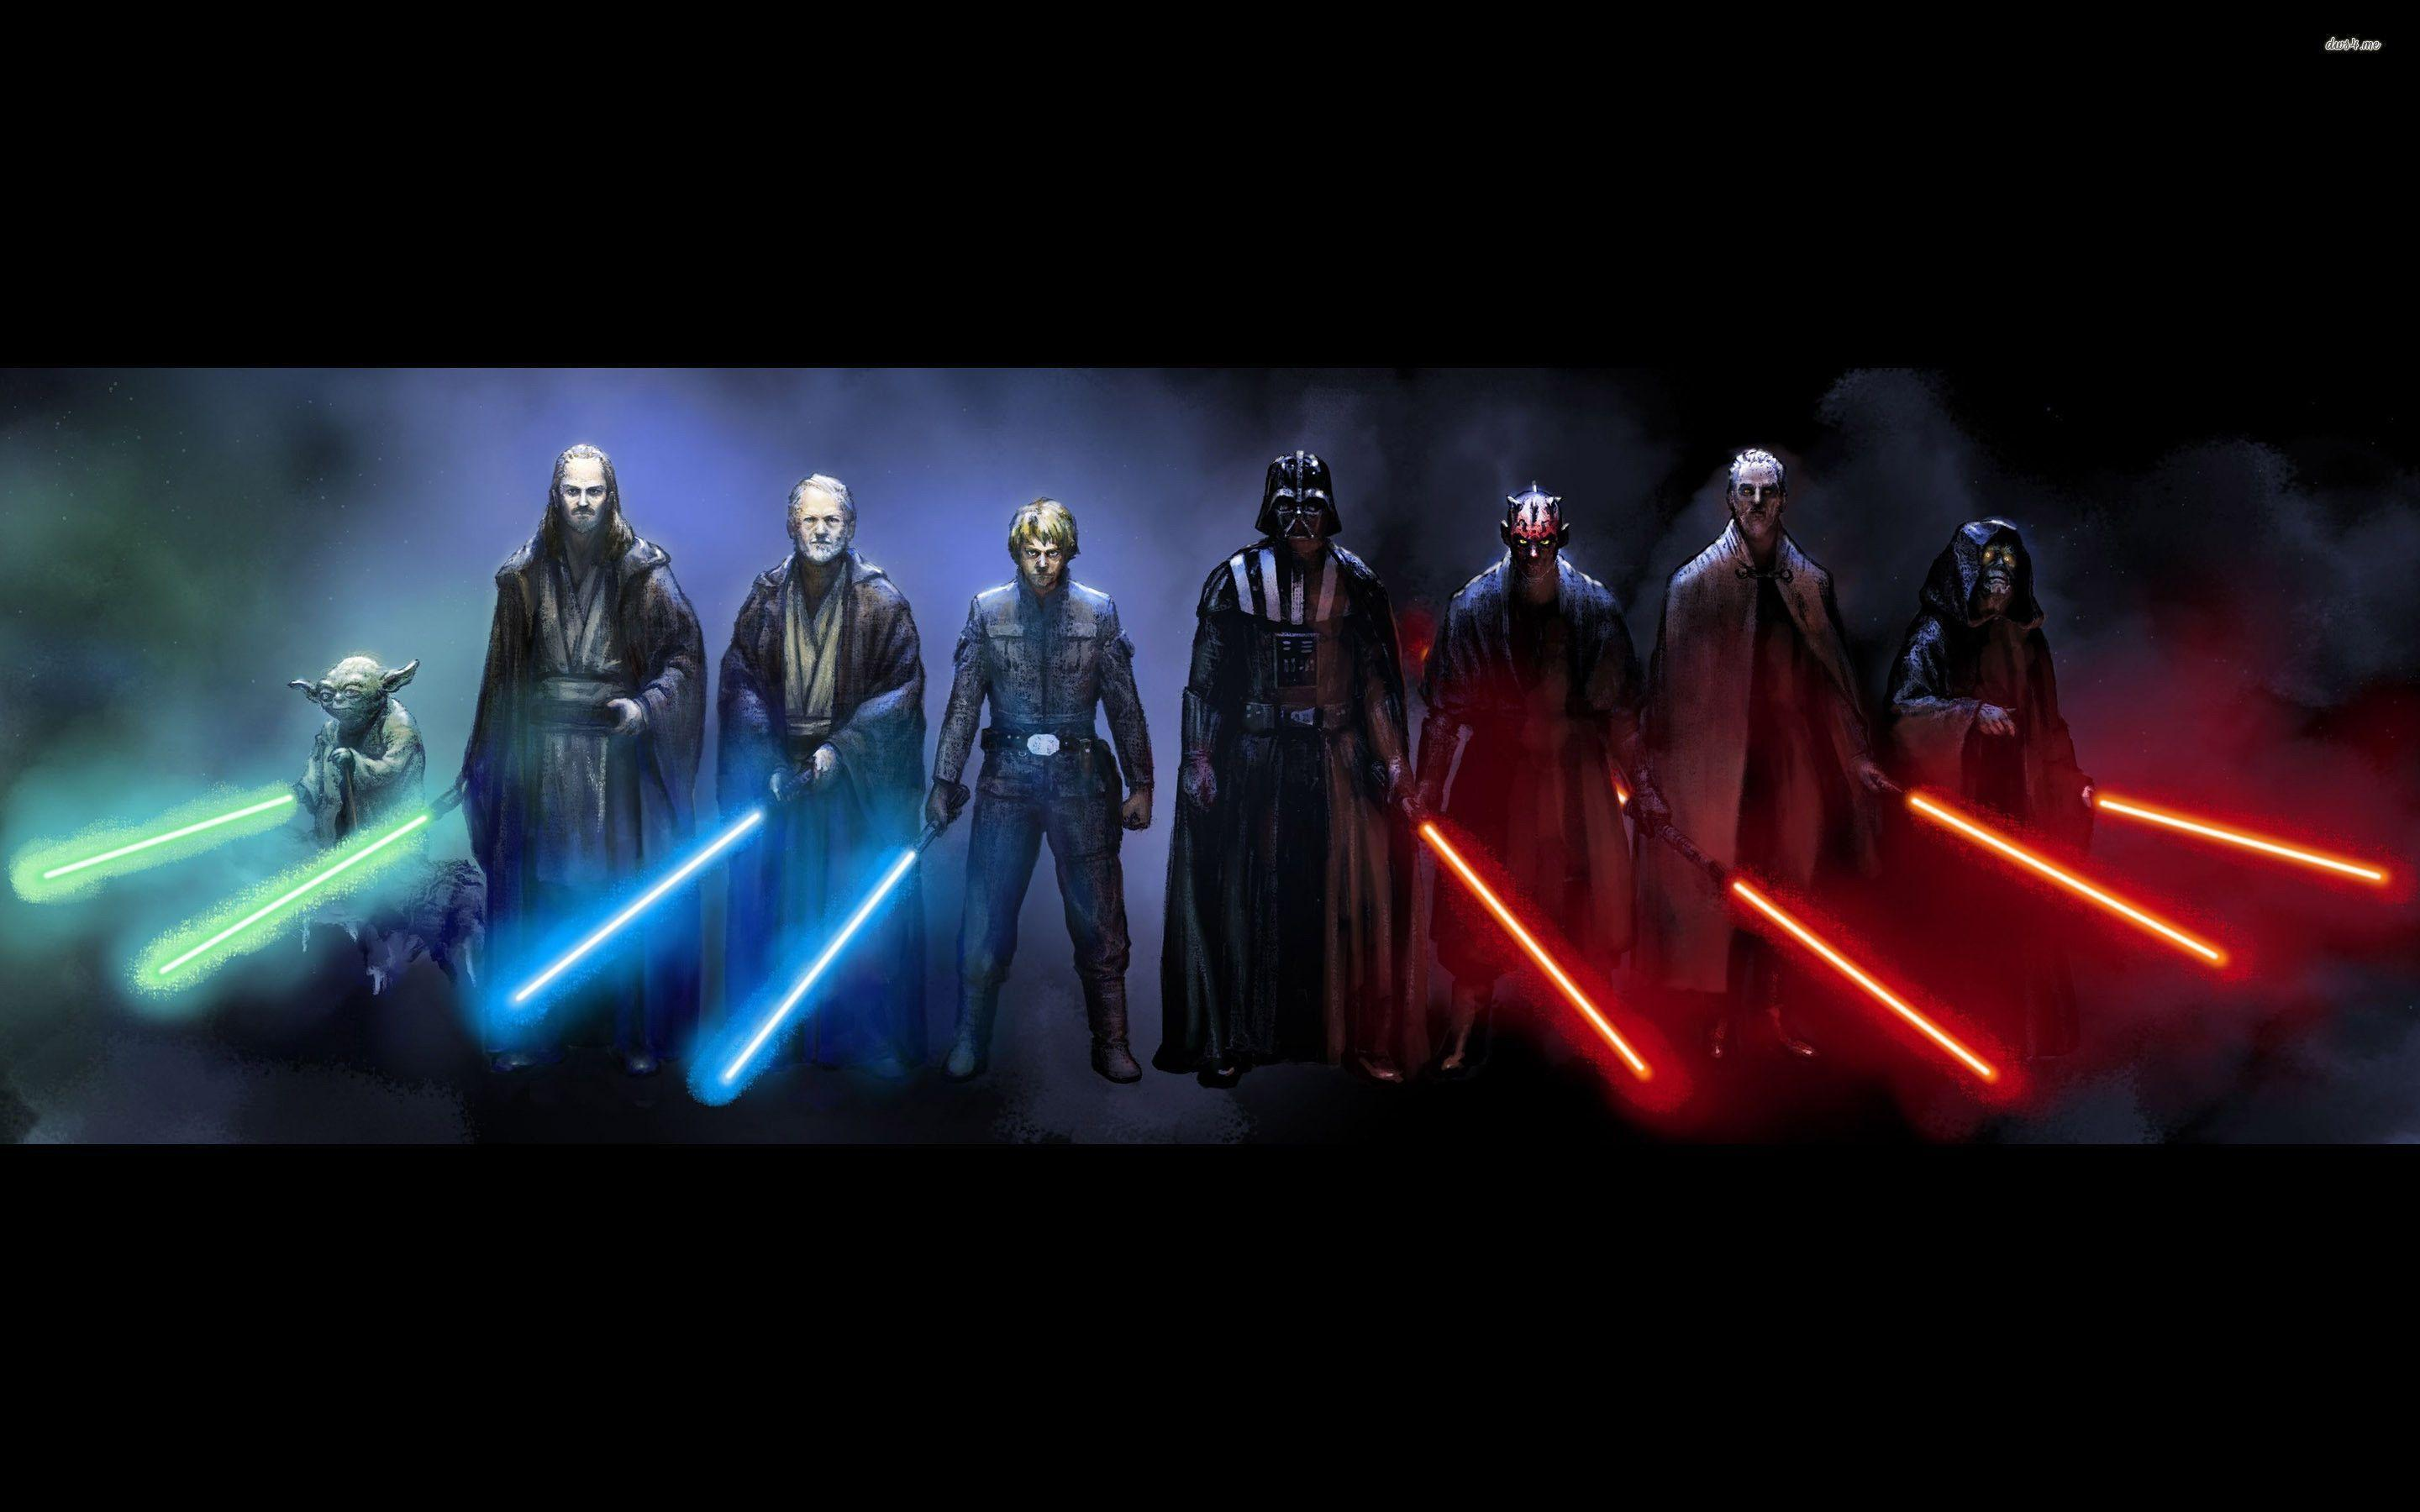 Star Wars Jedi Wallpapers 2880x1800